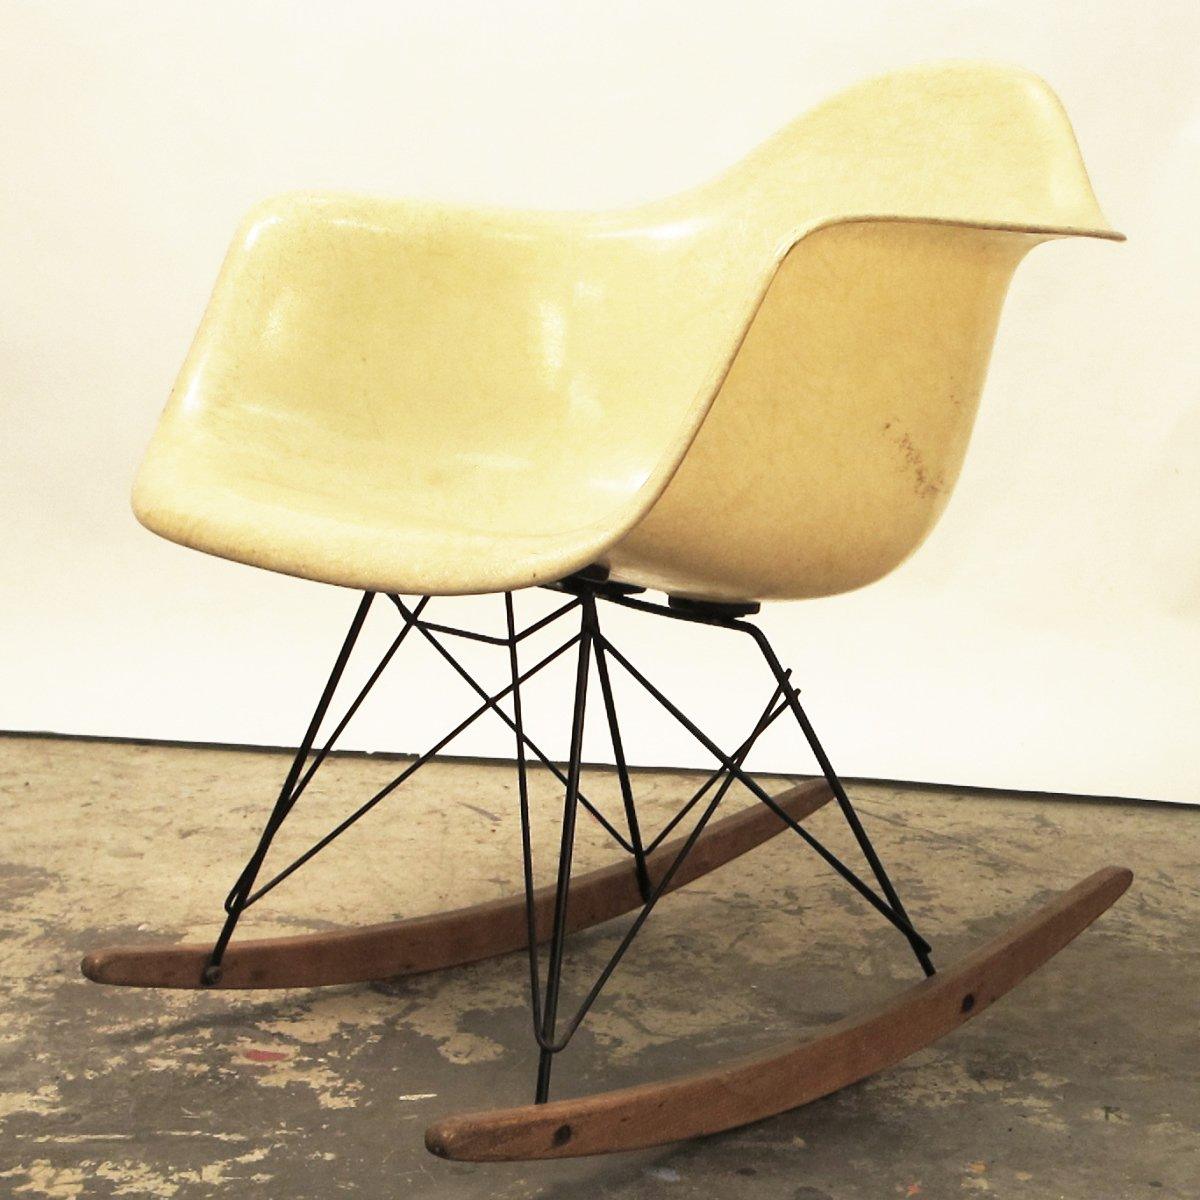 Charles Und Ray Eames Charles And Ray Eames